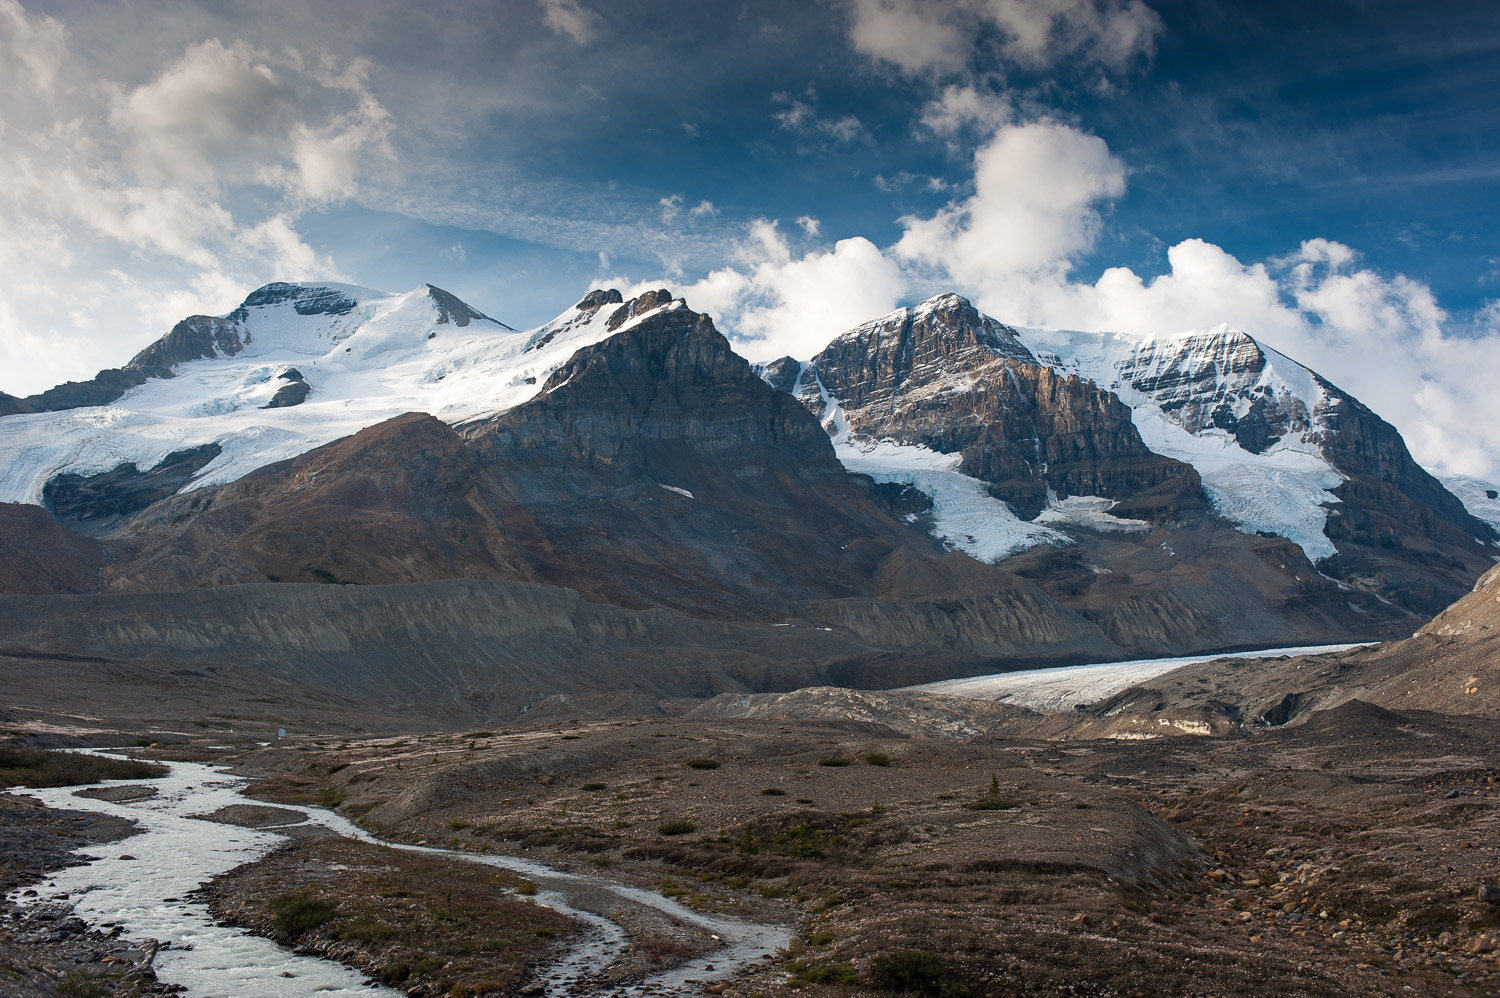 Mt. Athabasca & Columbia Icefields